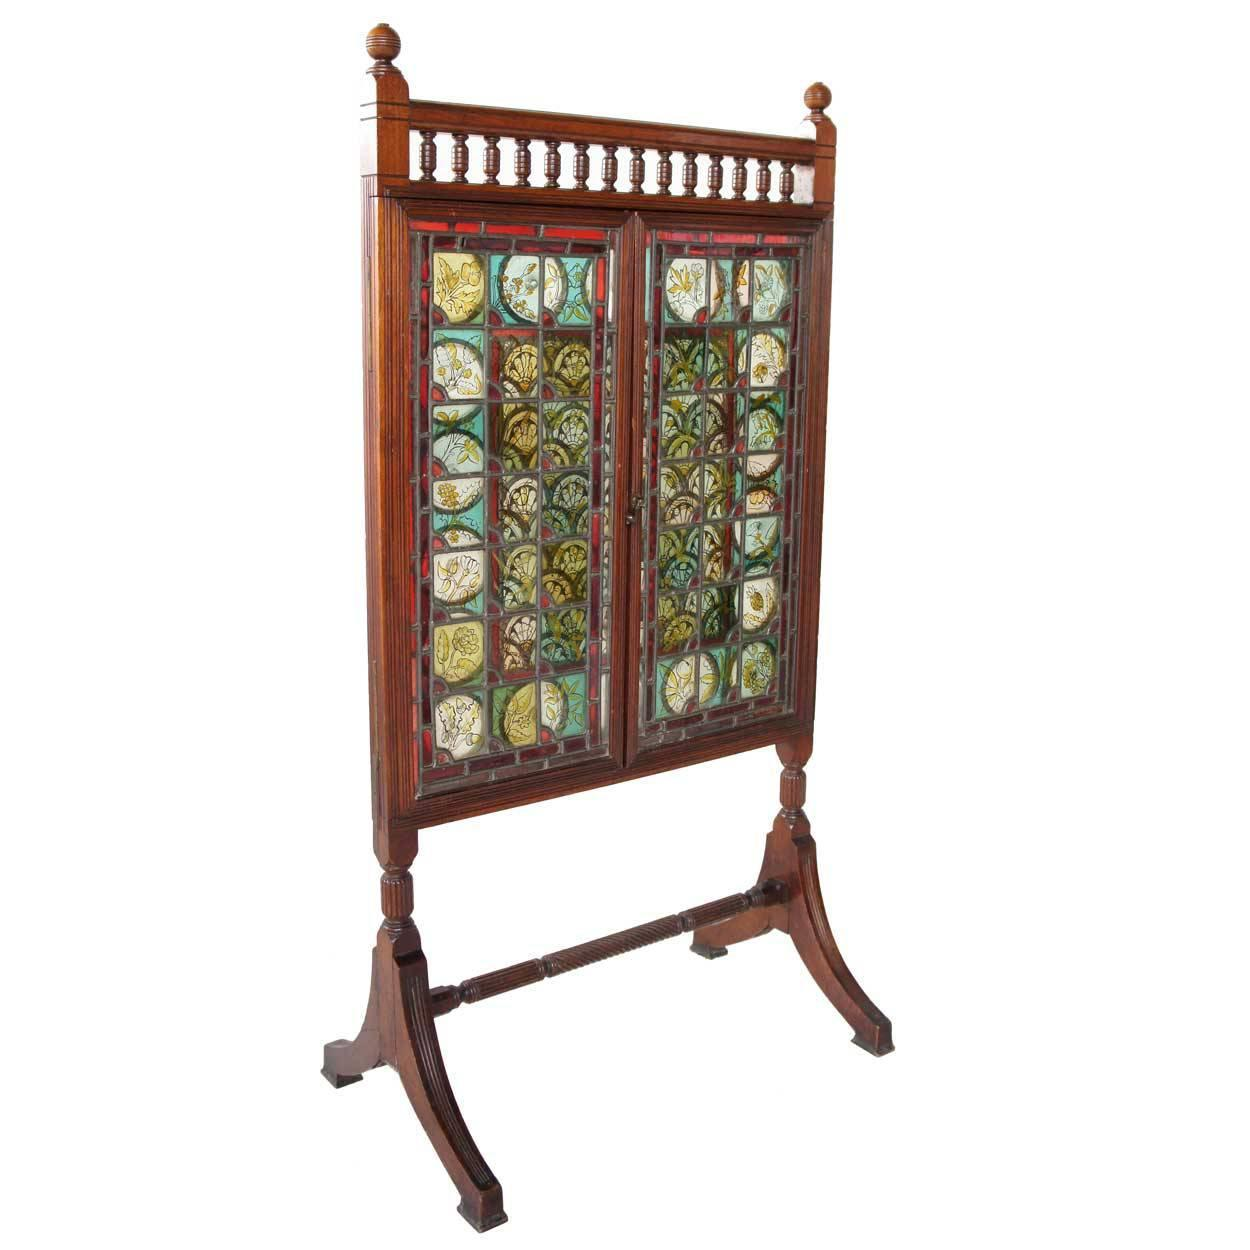 English Cox And Sons Arts And Crafts Stained Glass And Walnut Fireplace Screen At 1stdibs